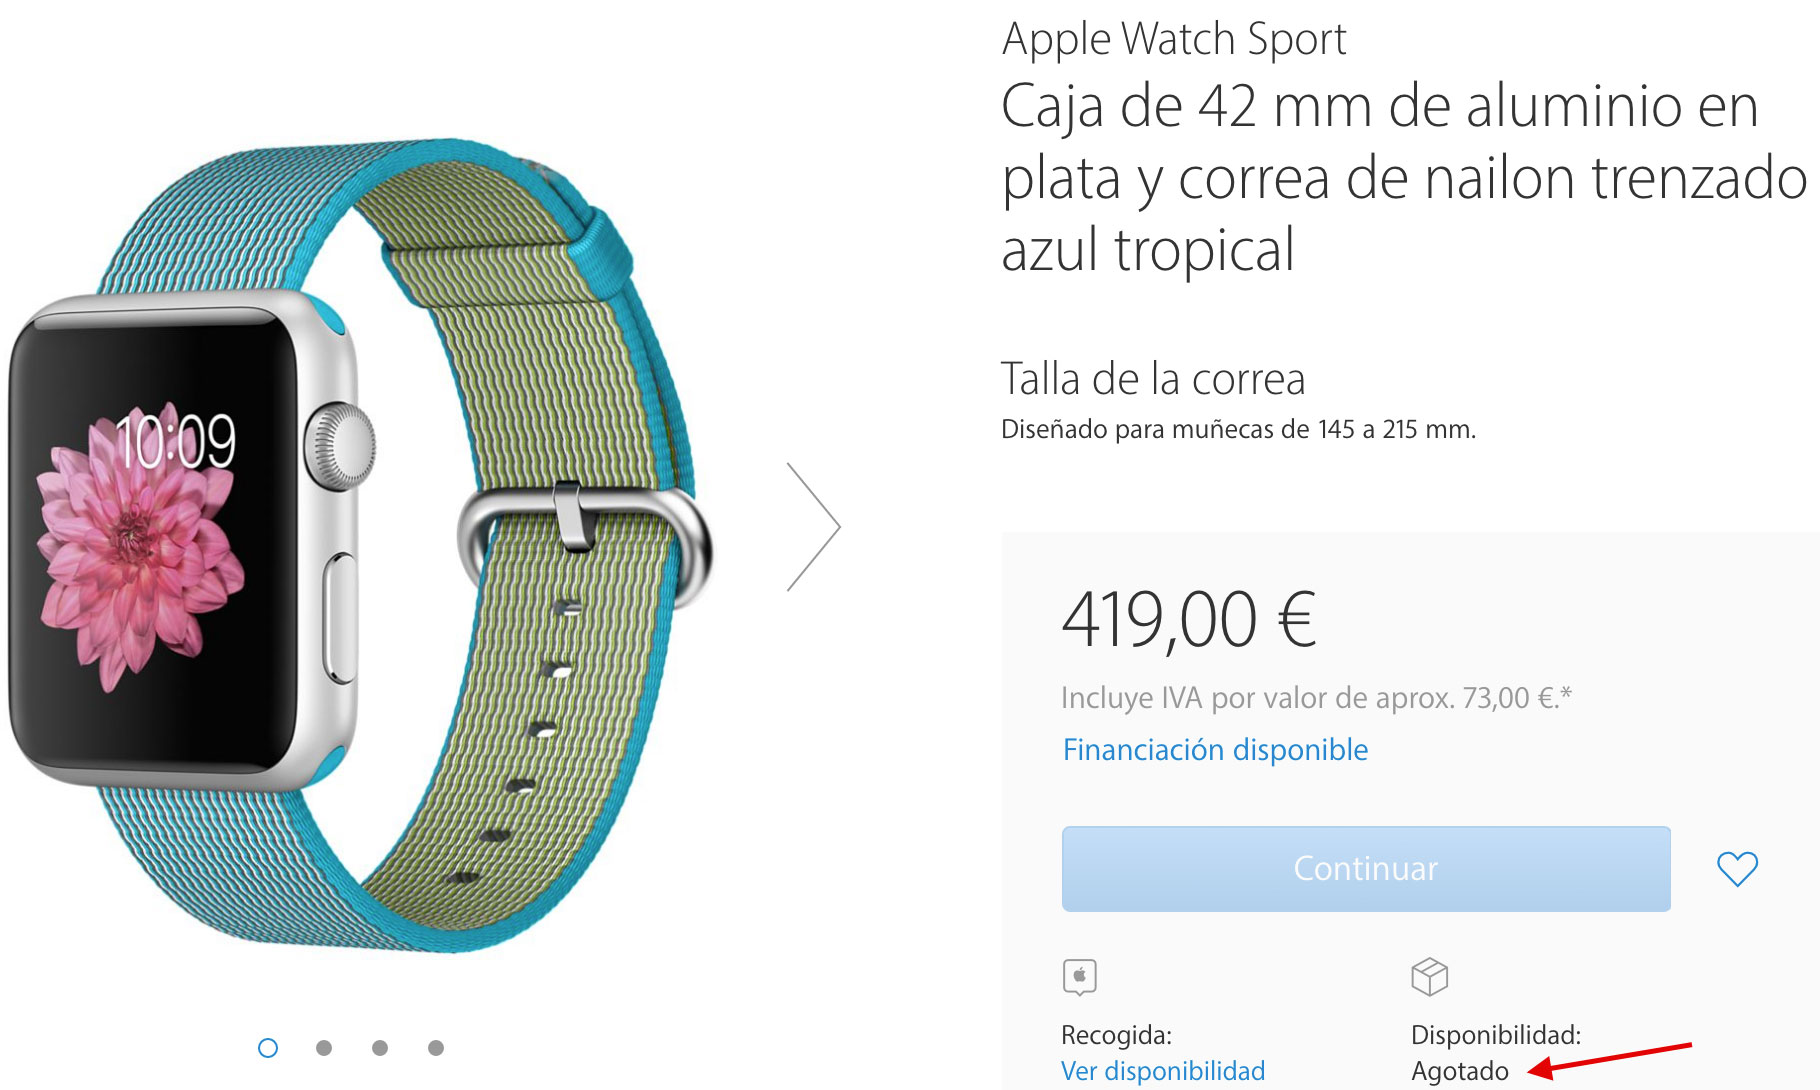 Apple Watch agotado